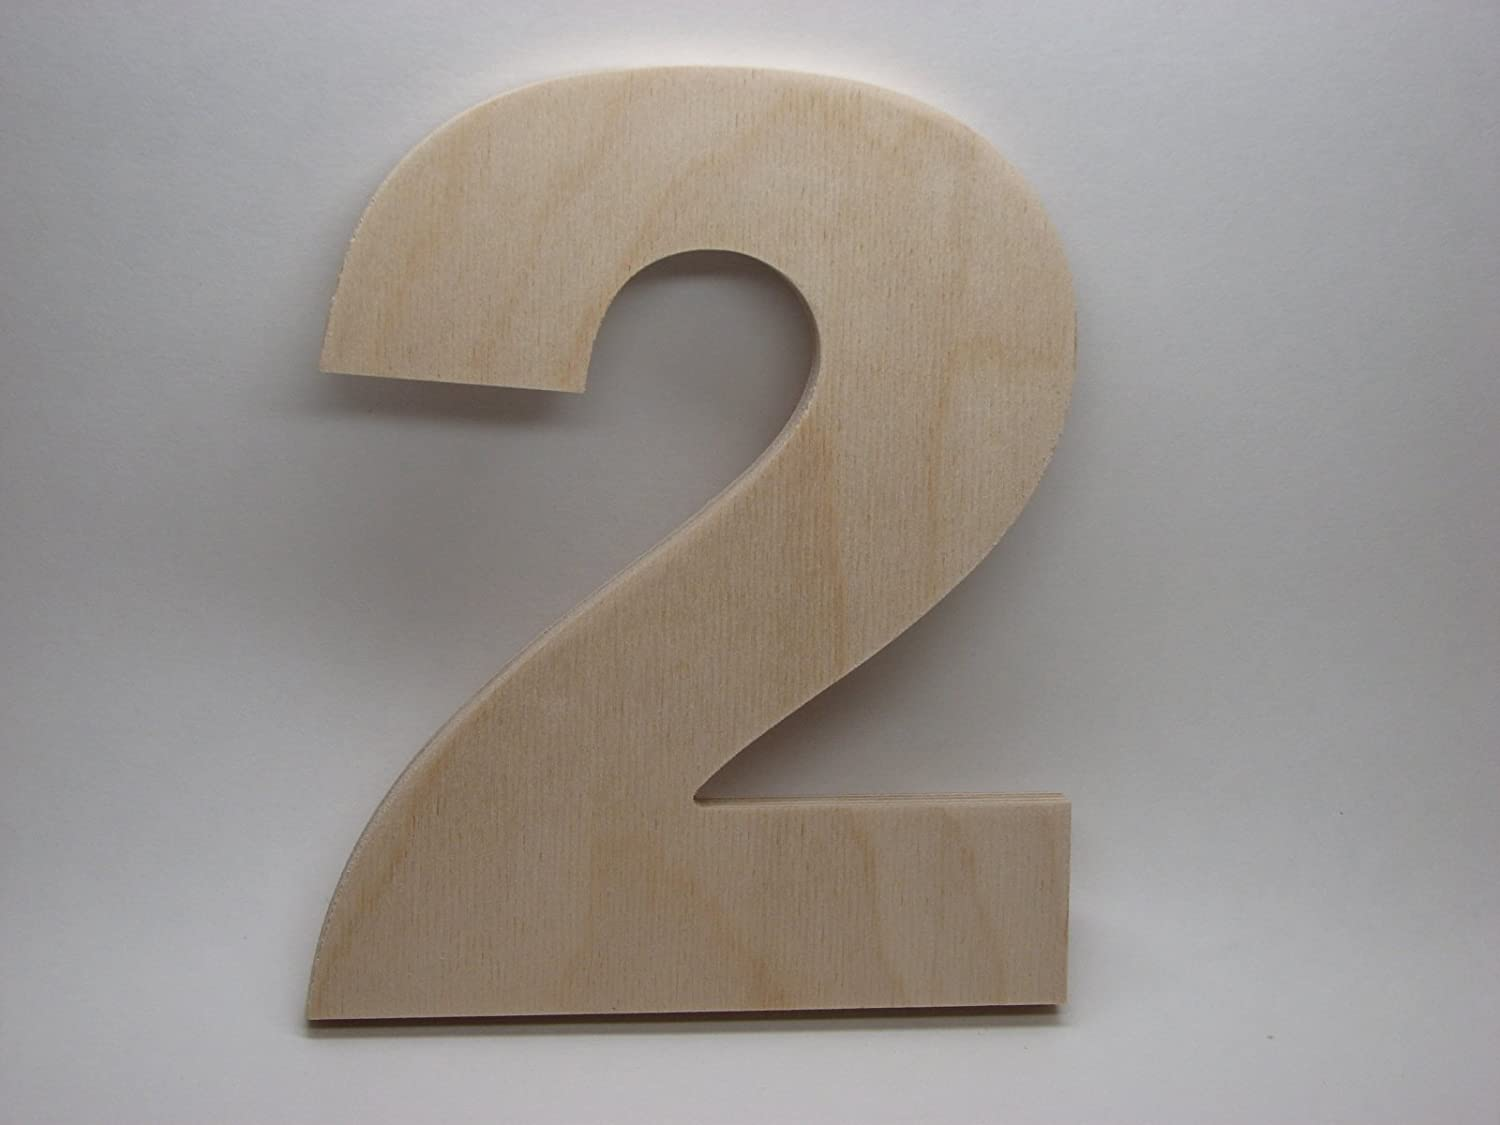 Amazon Com Letterworx 8 Wooden Number 2 Arial Font Unfinished Baltic Birch Wood Letter 8 Inch Tall